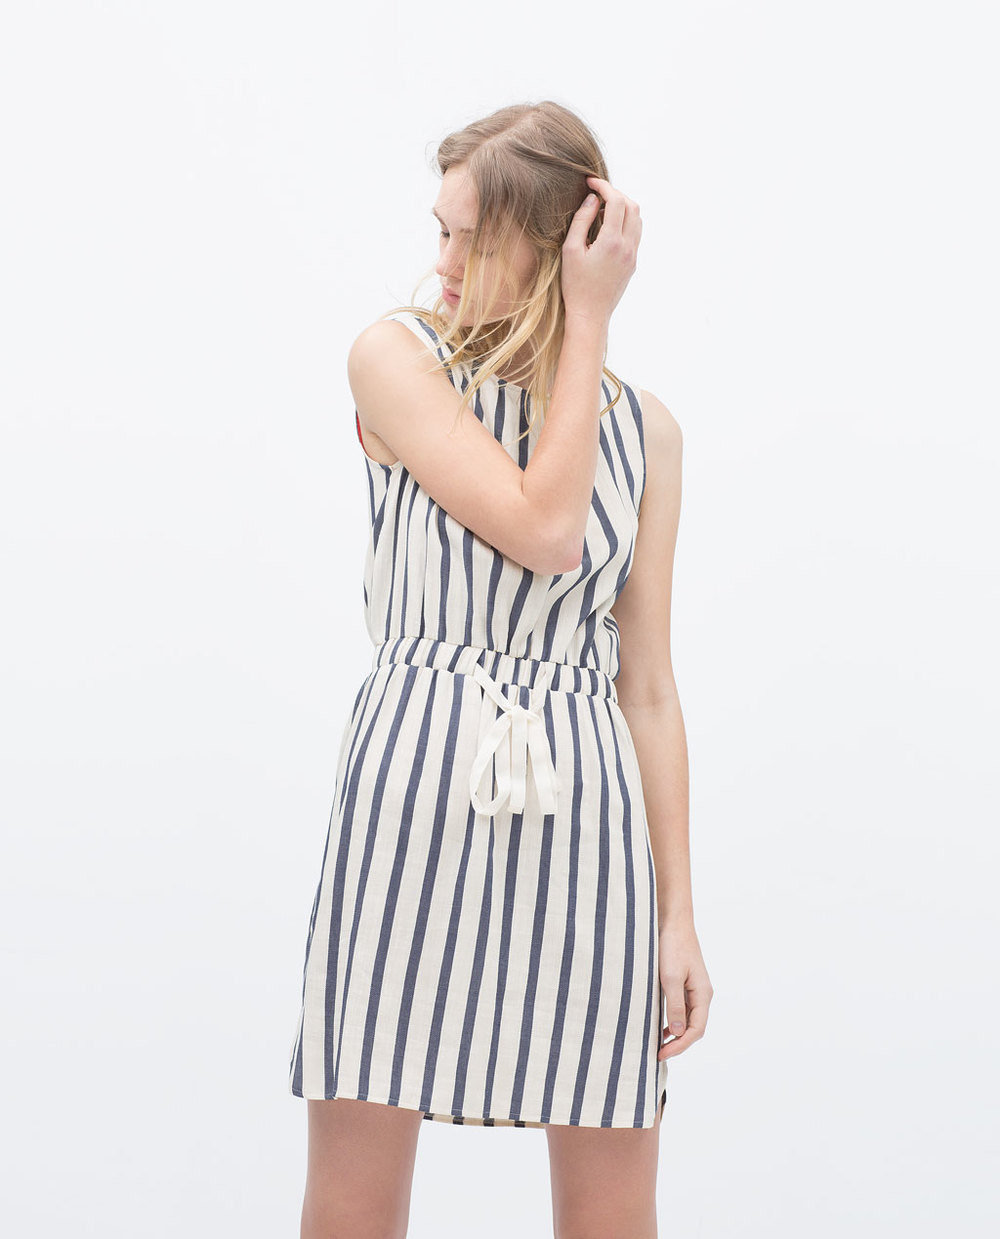 VERTICAL STRIPE DRESS 39.99 USD